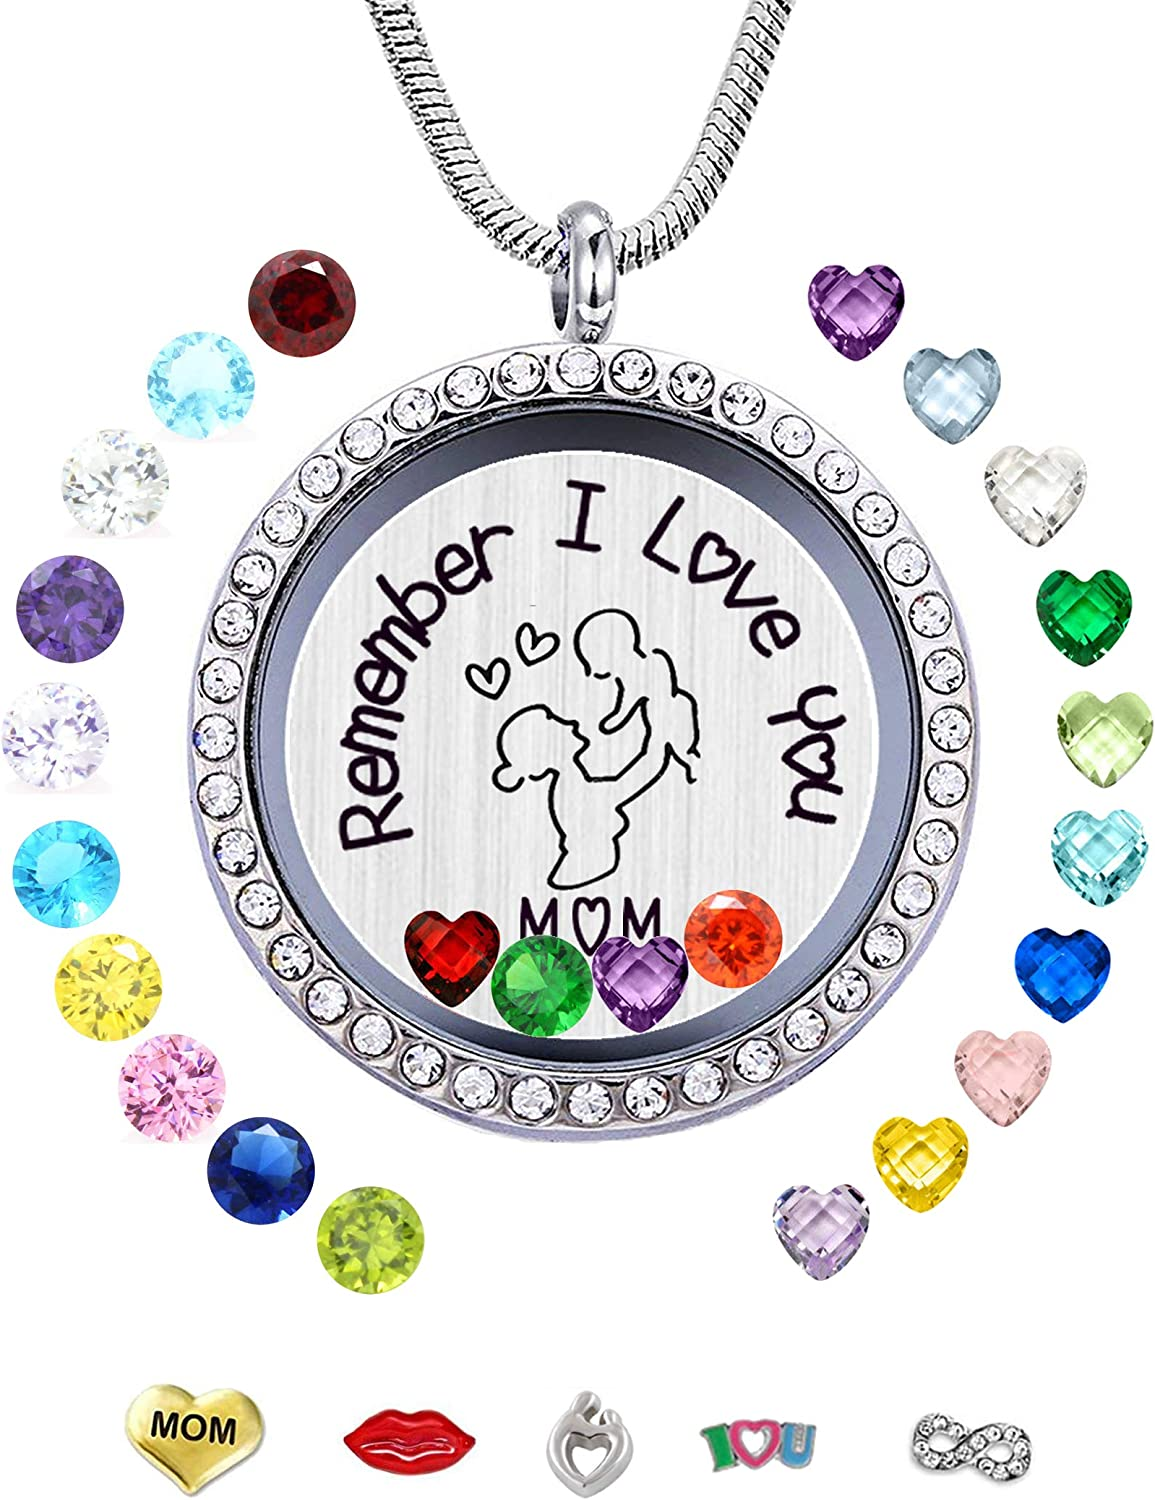 30mm Stainless Steel Living Memory Floating Locket Necklace Pendant with Charms and 24 Birthstones, Best Gifts for Women Girls